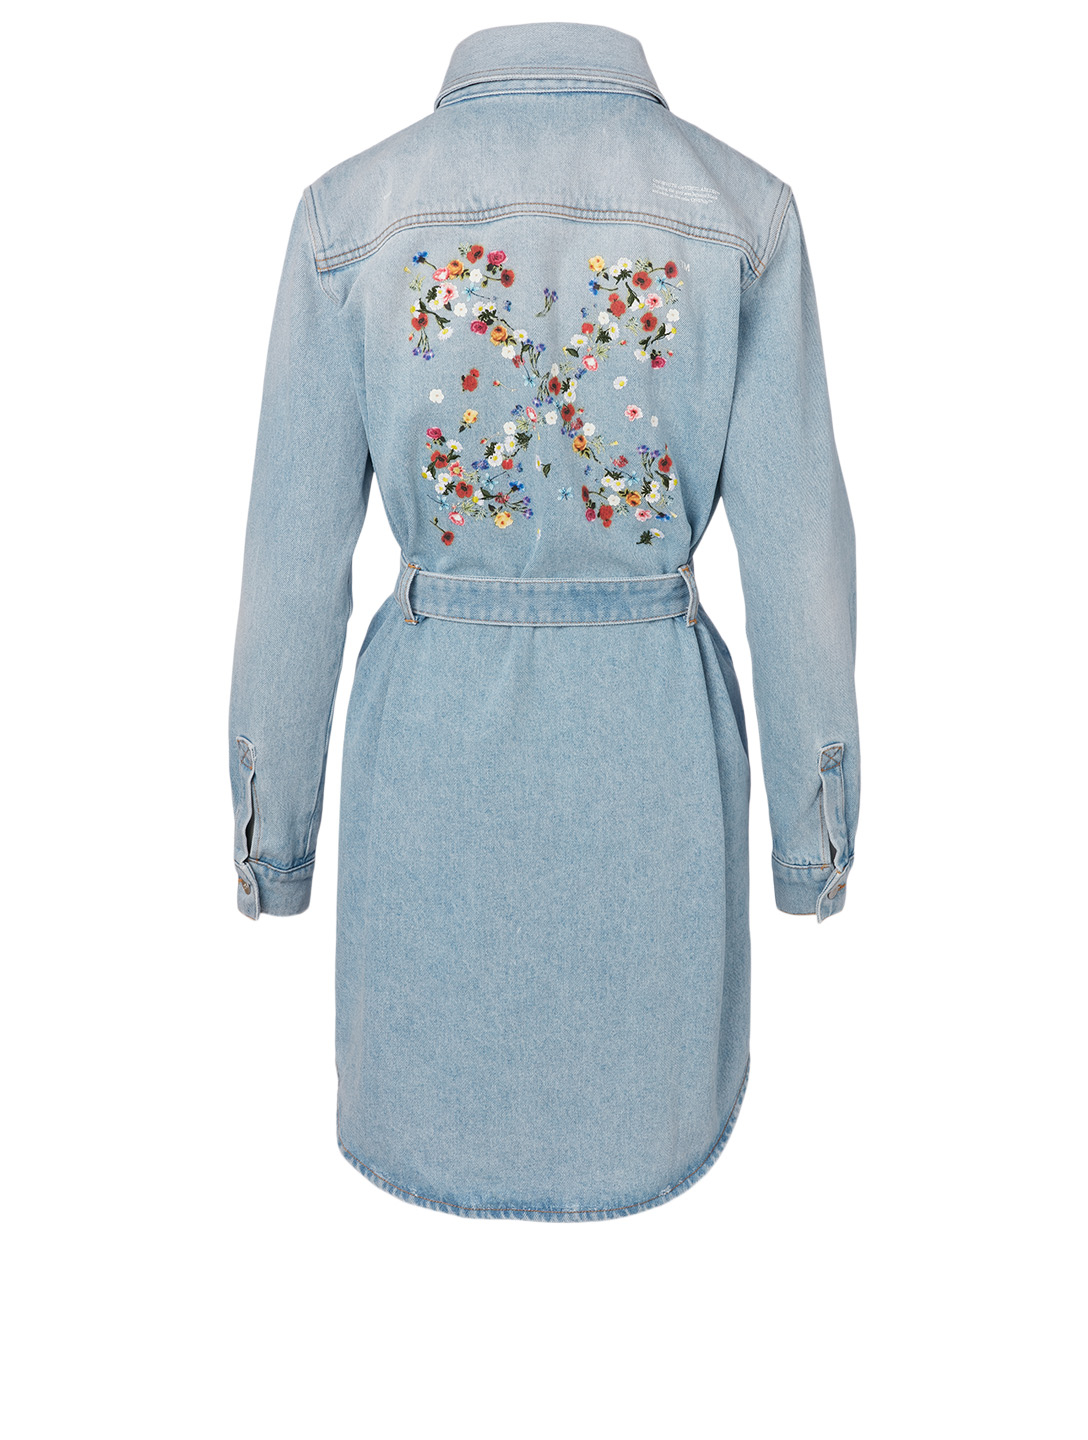 OFF-WHITE Floral Arrow Denim Mini Dress Women's Blue